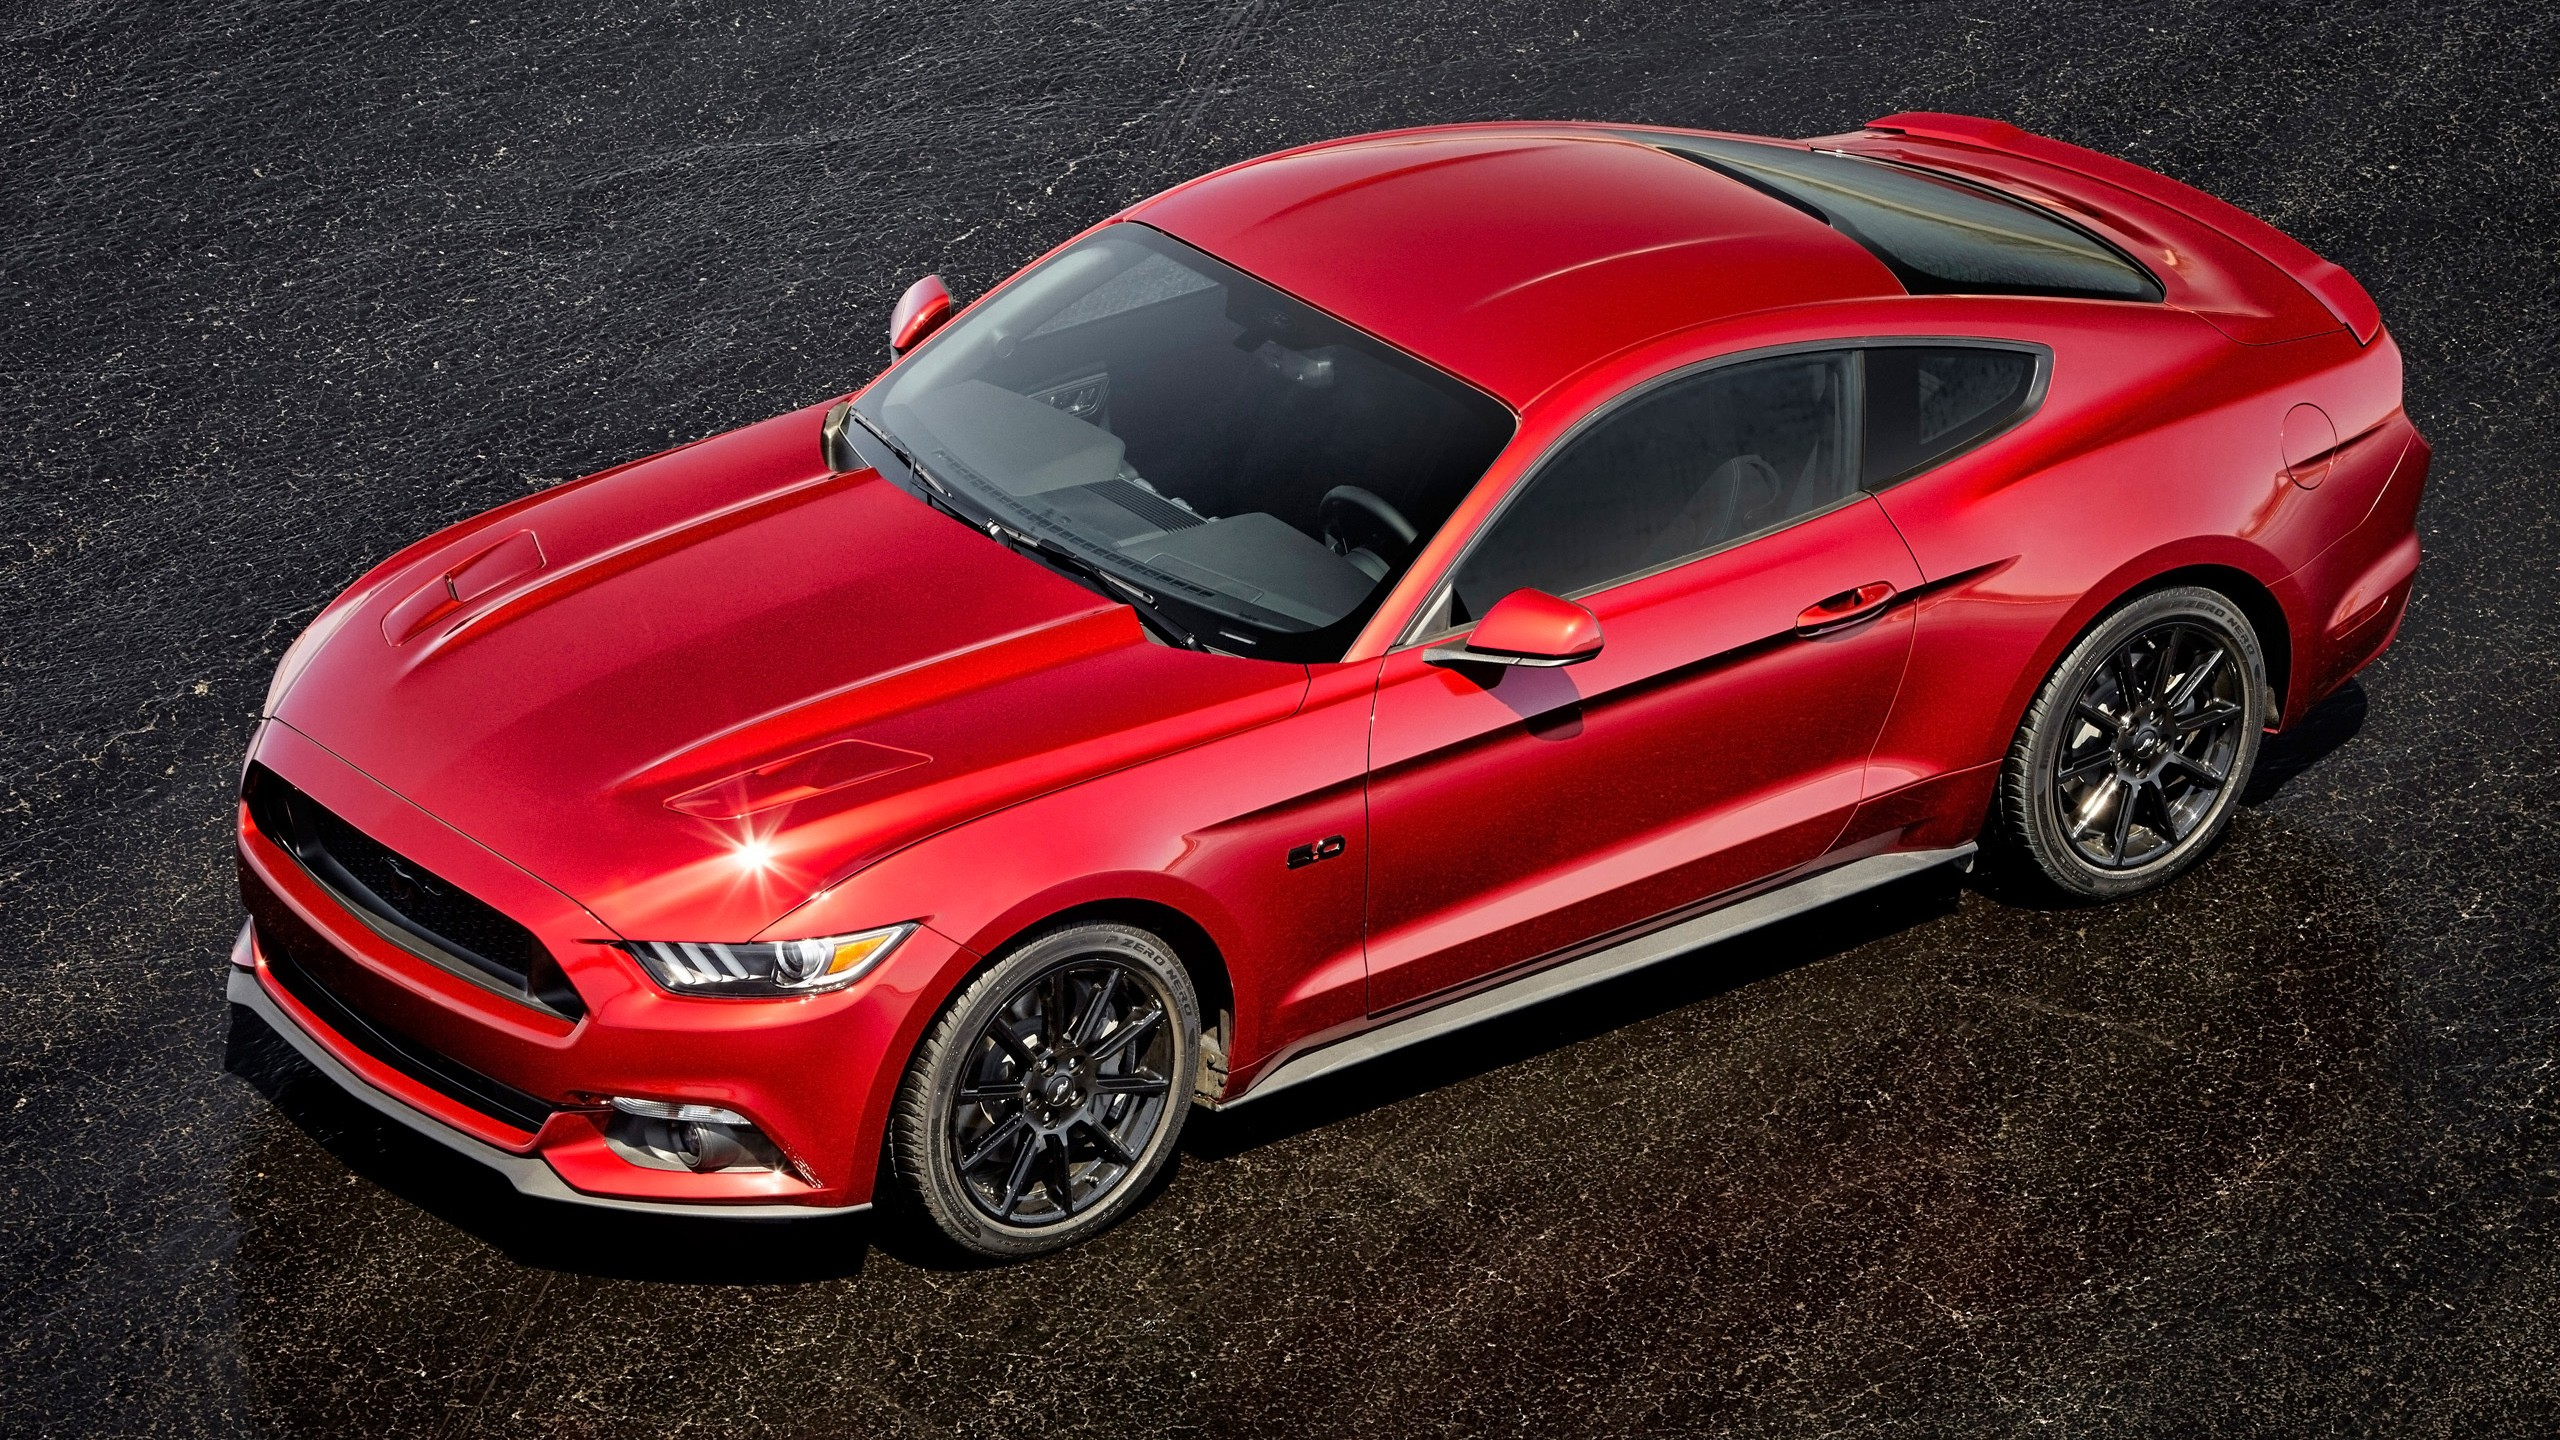 2016 Ford Mustang Gt Wallpaper Hd Car Wallpapers Id 5336